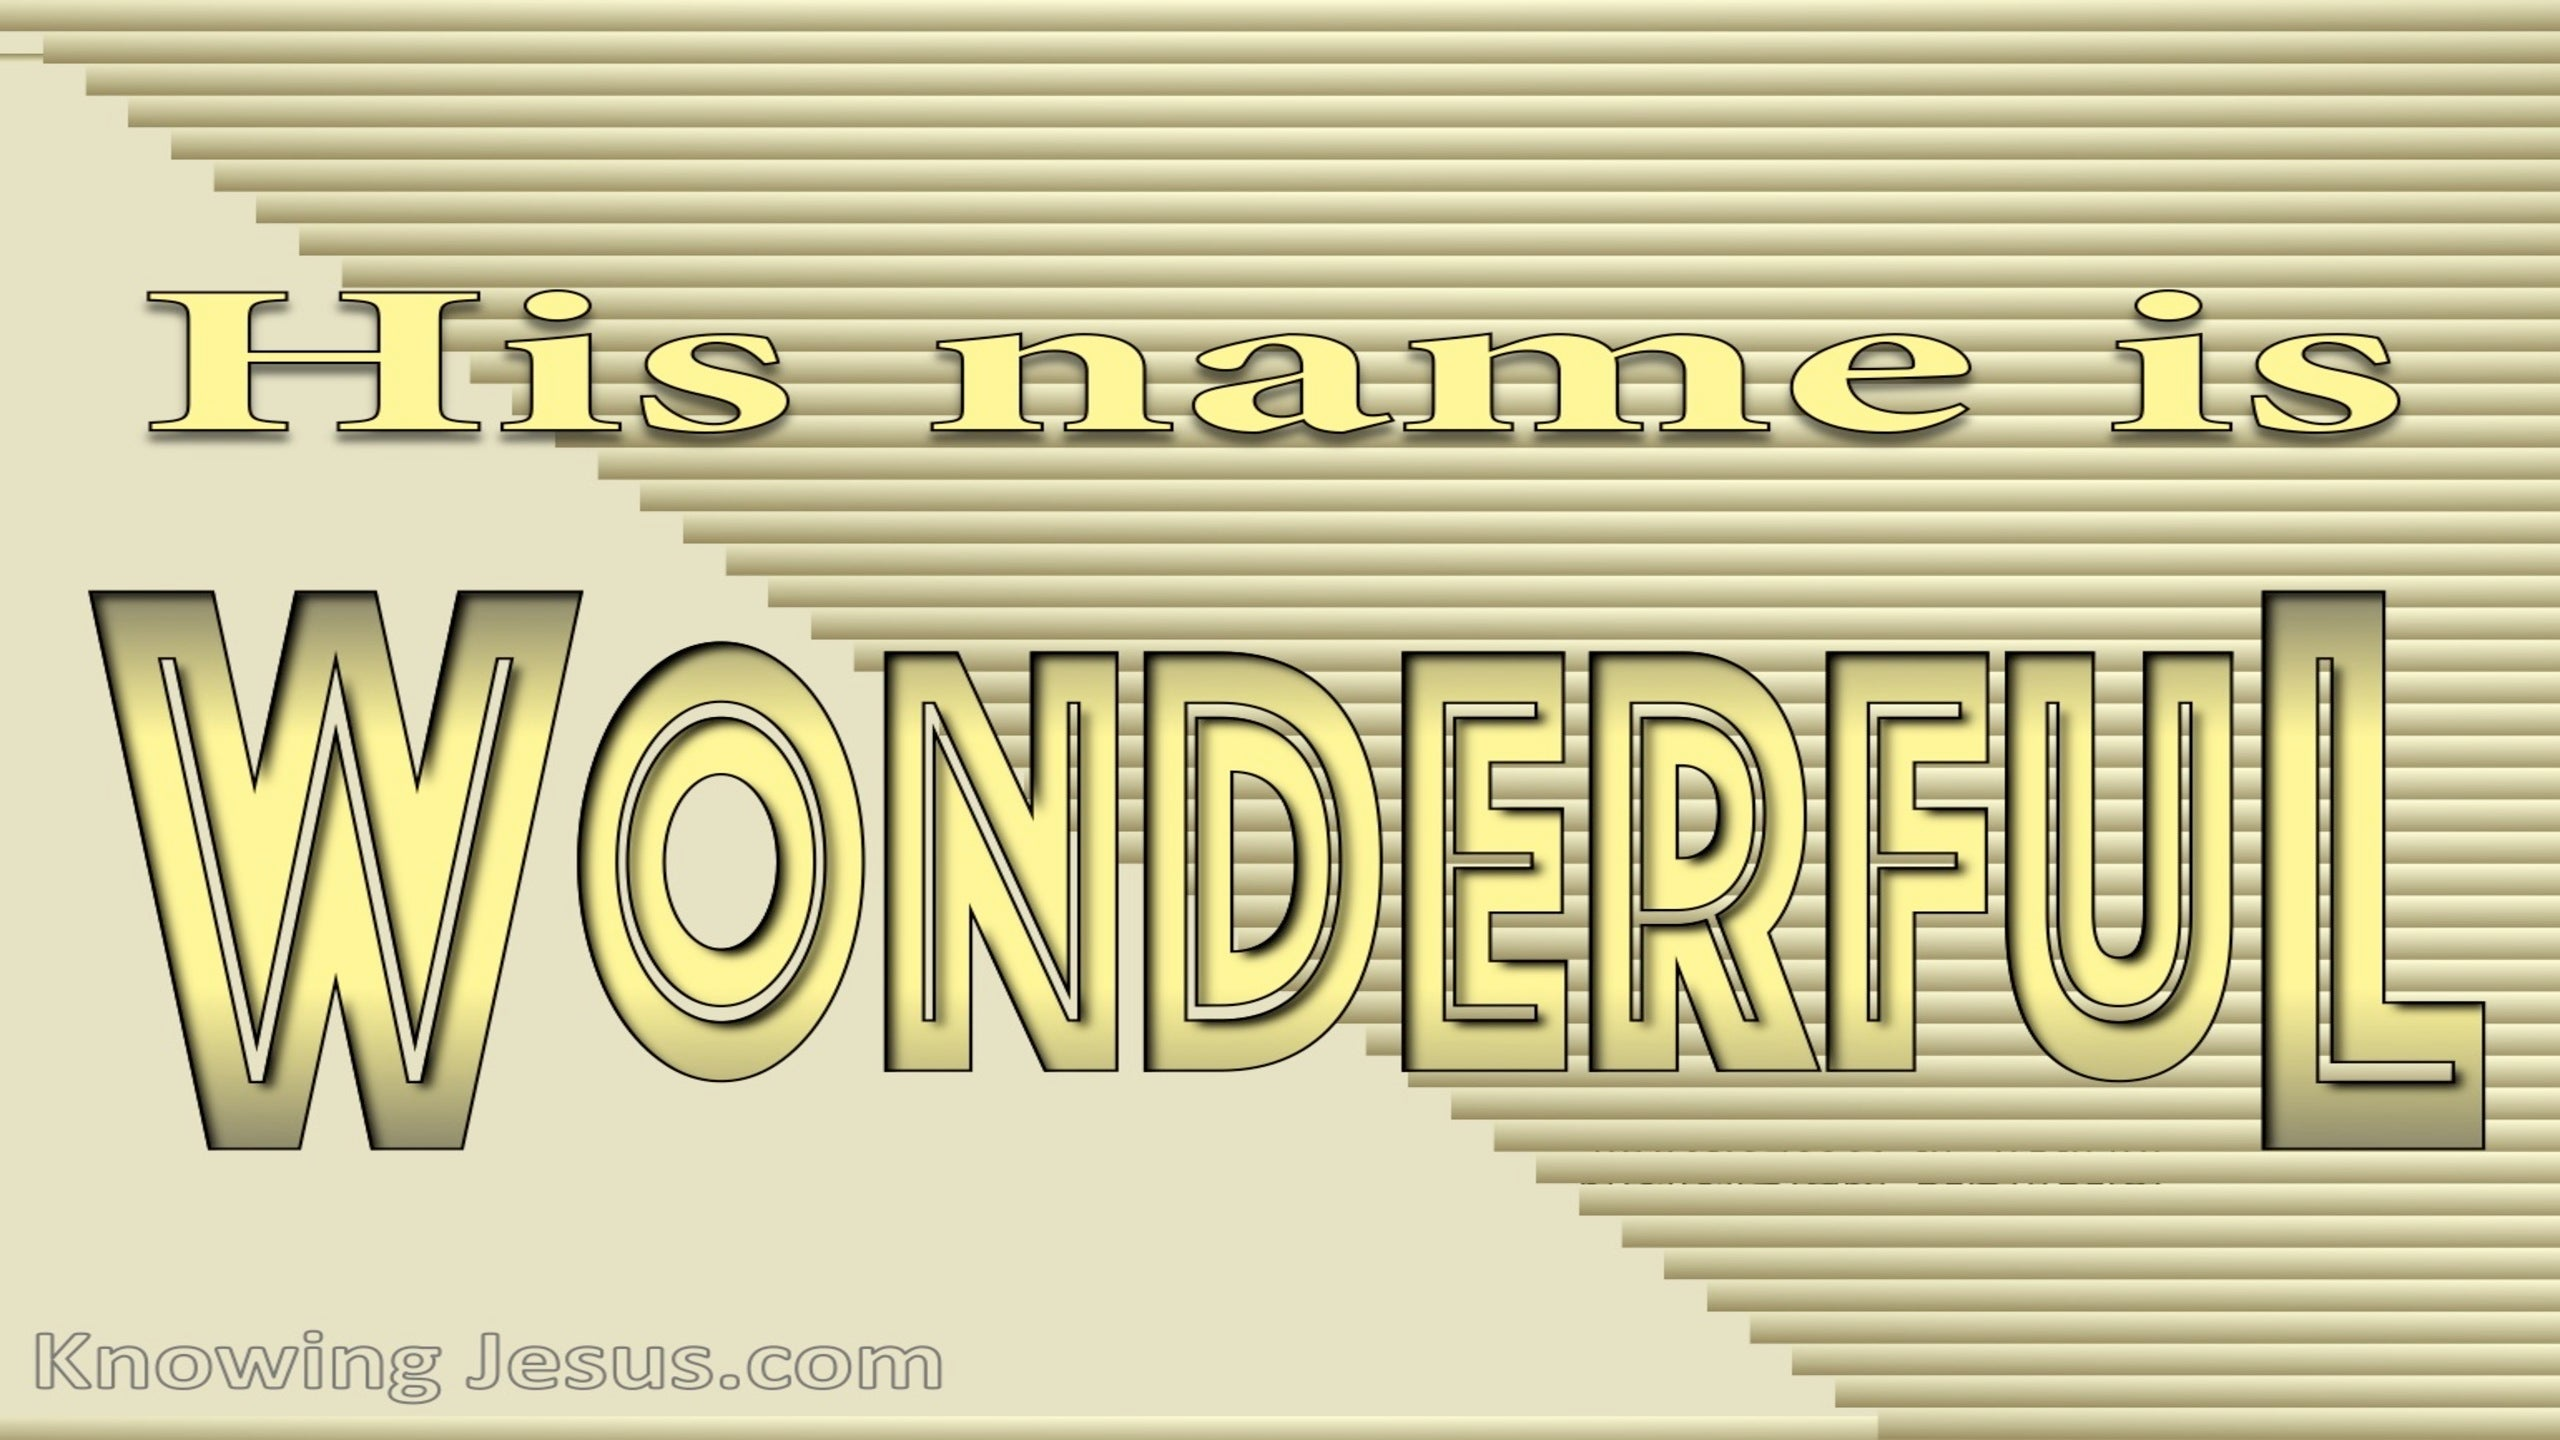 Judges 13:18 His Name Is Wonderful (gold)